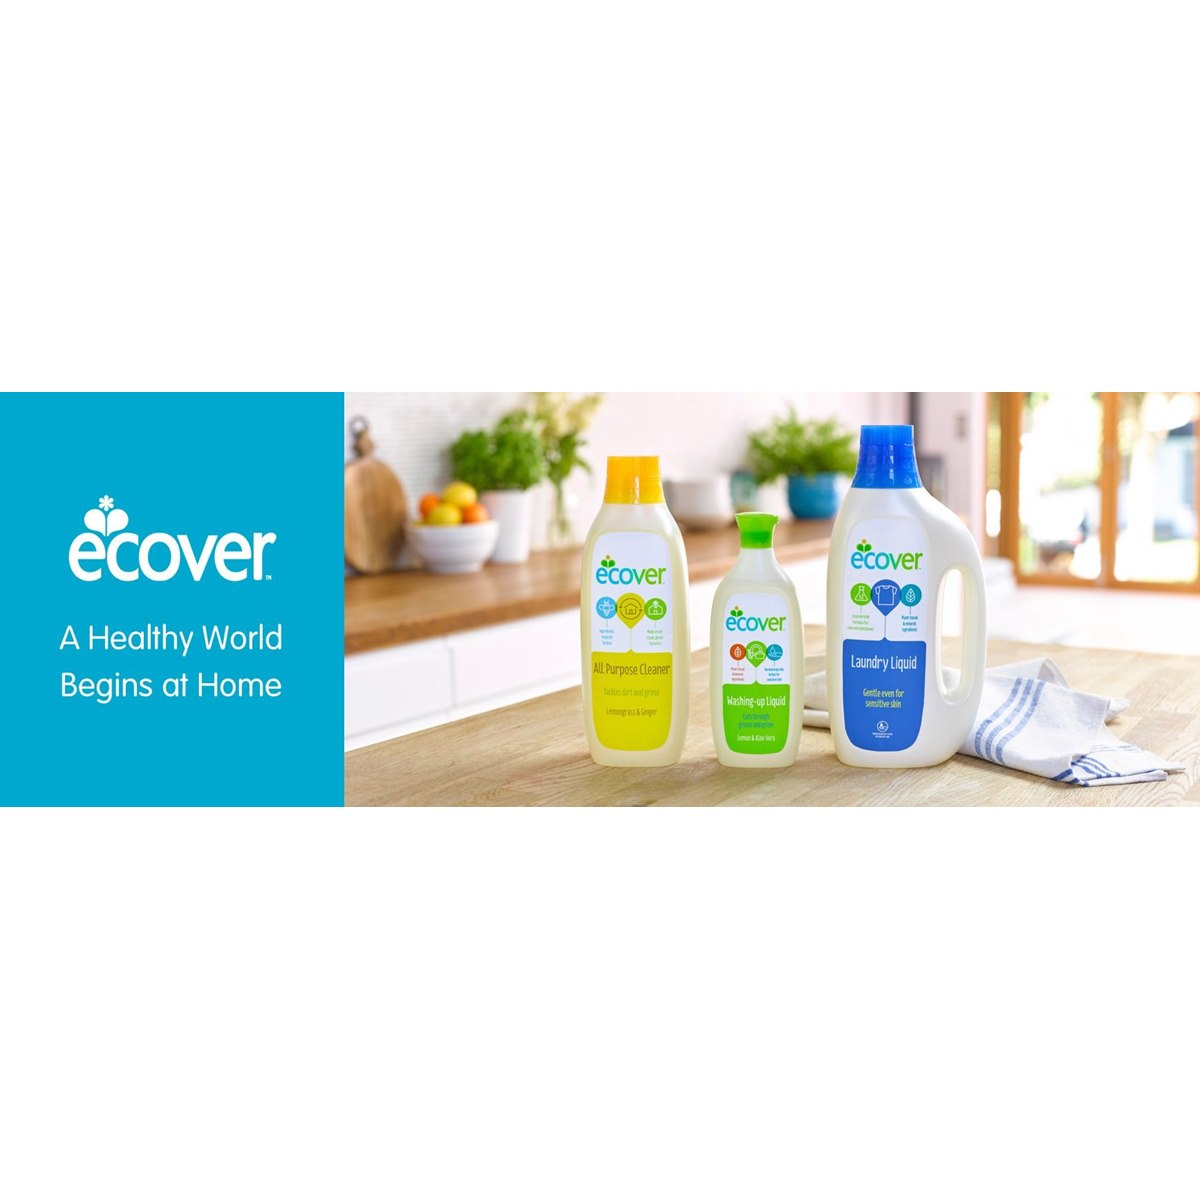 Where to Buy Ecover Products